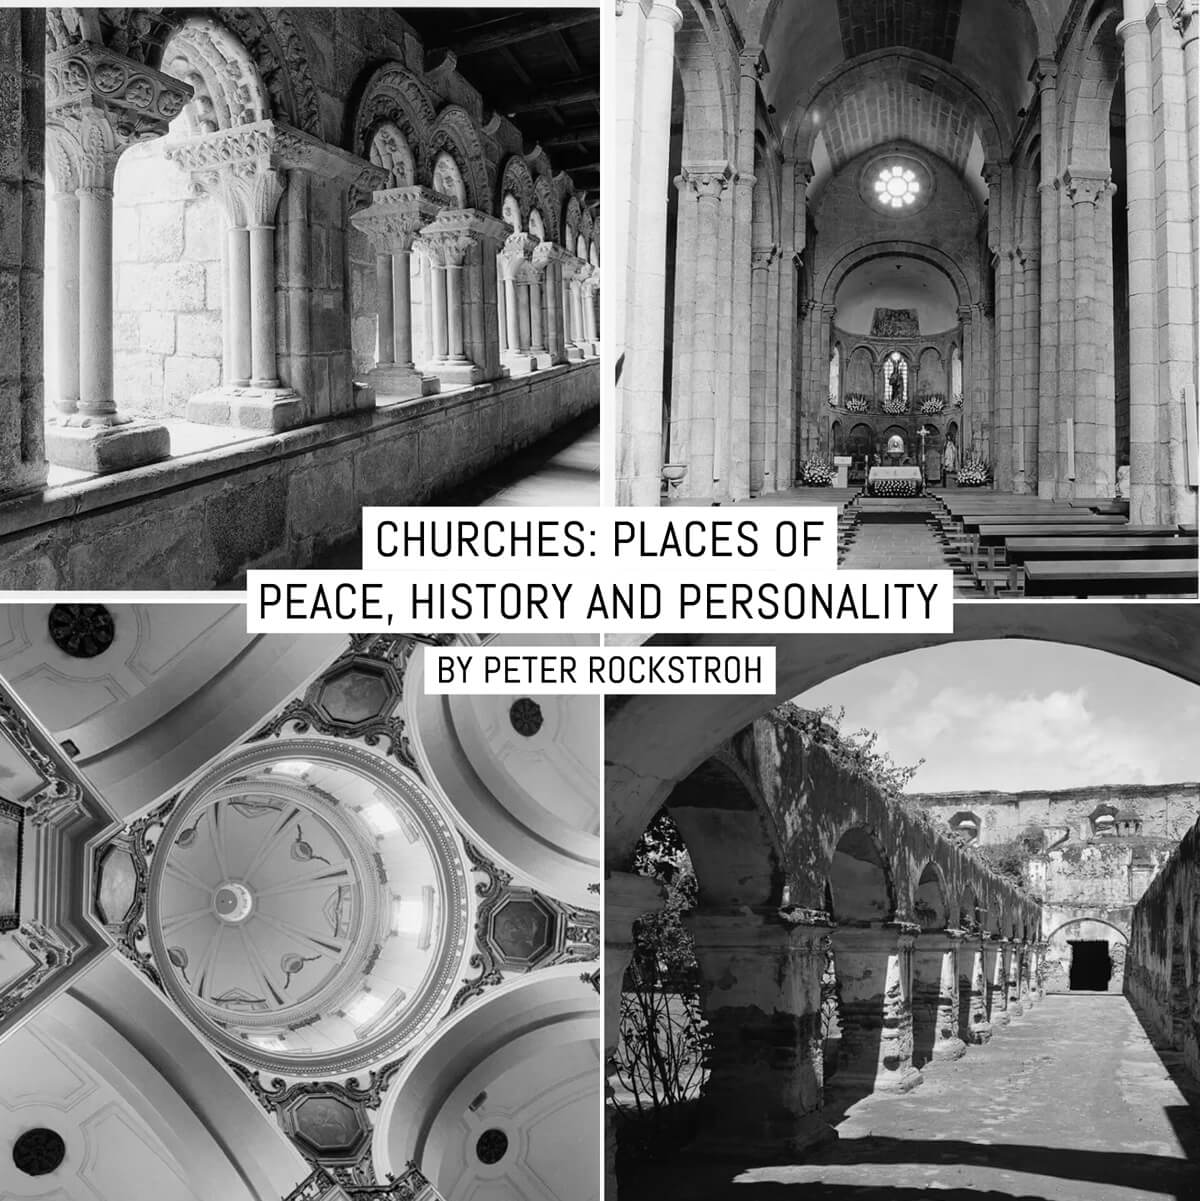 Churches: Places of peace, history and personality